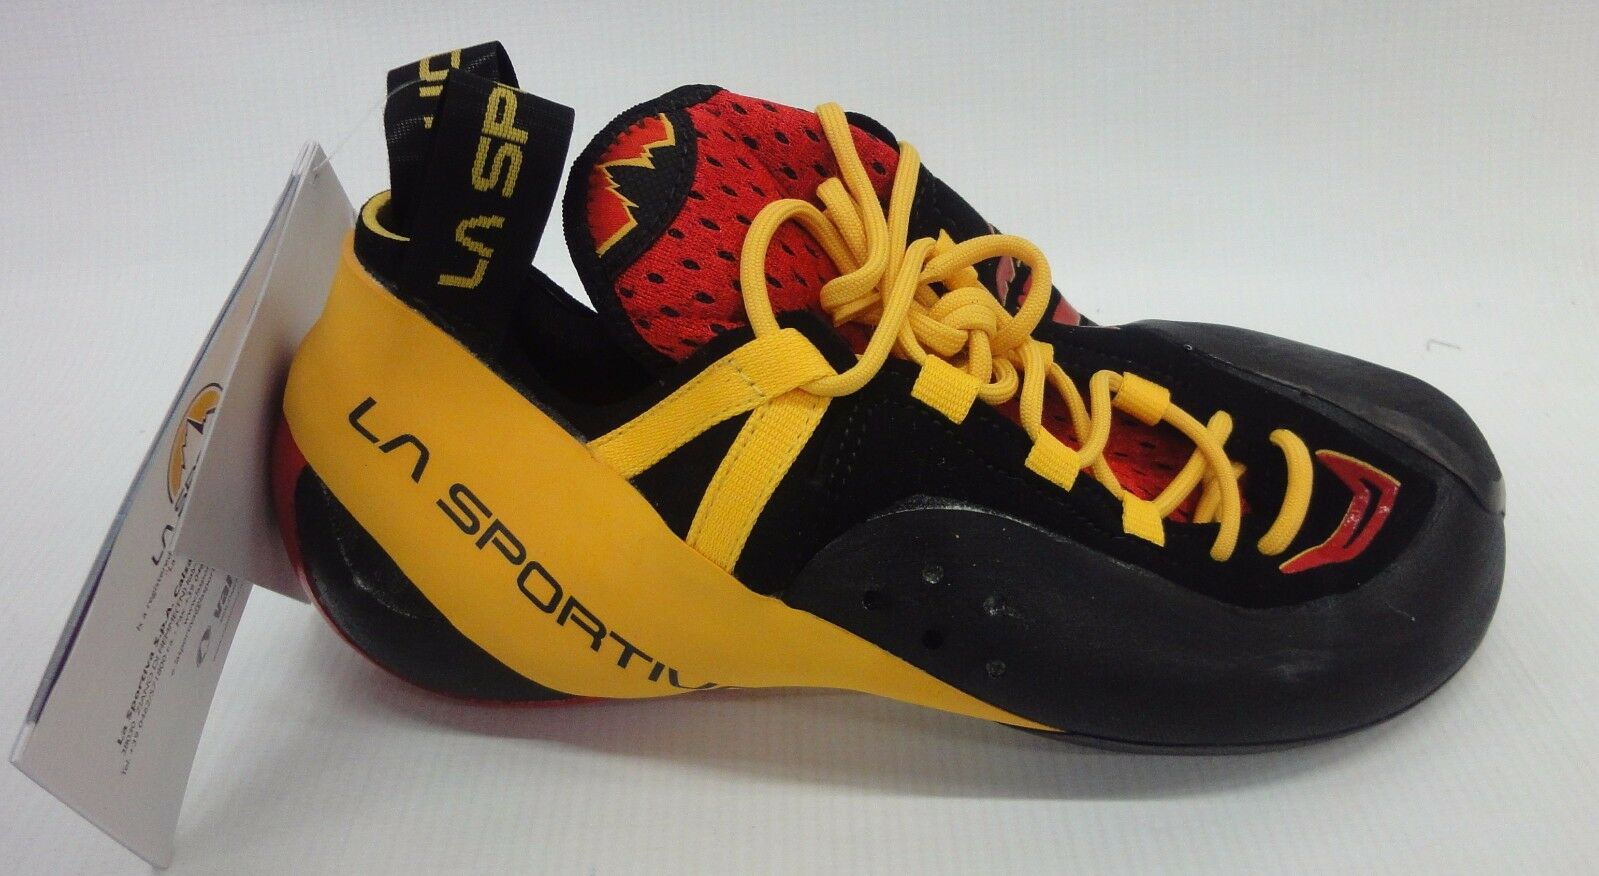 La Sportiva Mens Genius Rock Climbing shoes 10R Red (w  Yellow Black) Size 44